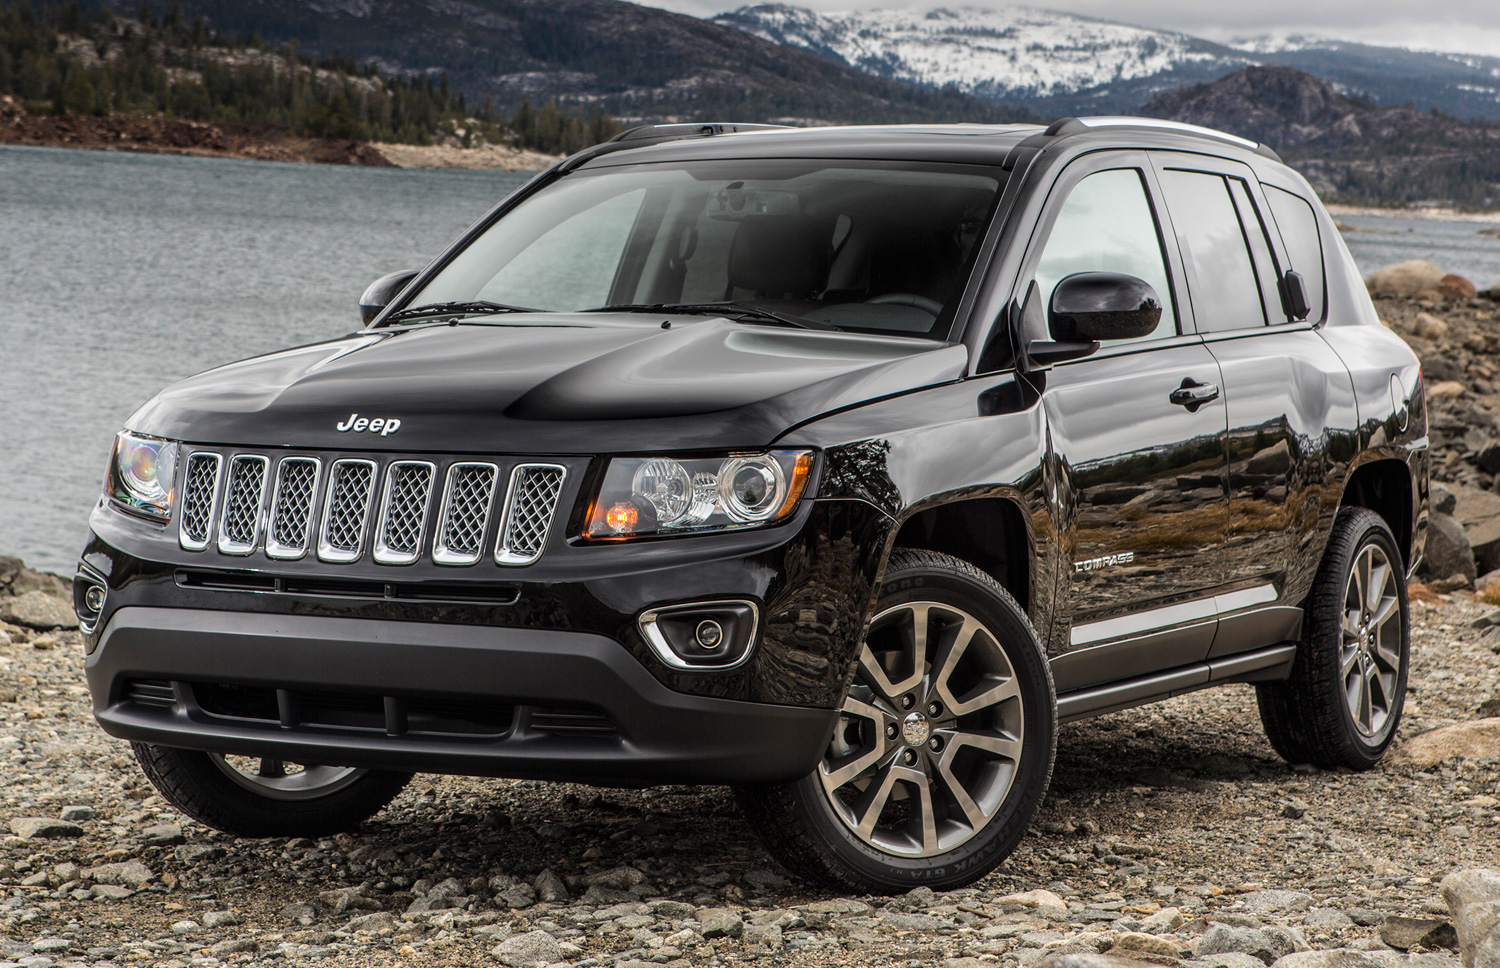 Jeep and compass